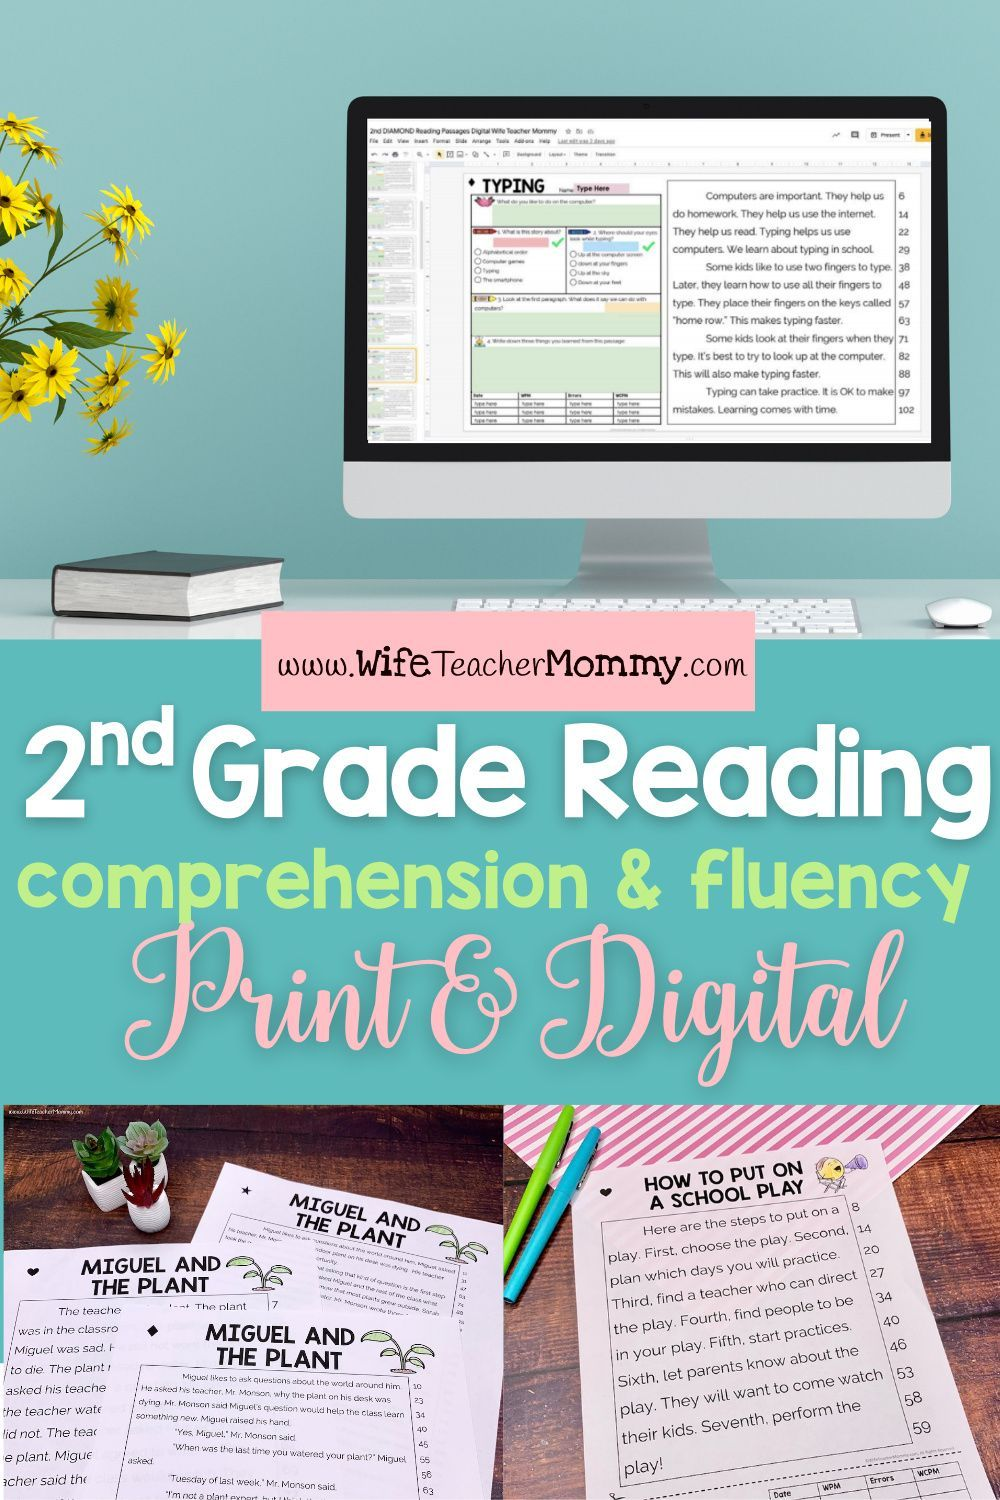 2nd Grade Differentiated Reading And Oral Fluency Print Digital Bundle Wife Teacher Mom In 2020 Differentiated Reading Reading Comprehension Oral Reading Fluency Free printable oral reading fluency